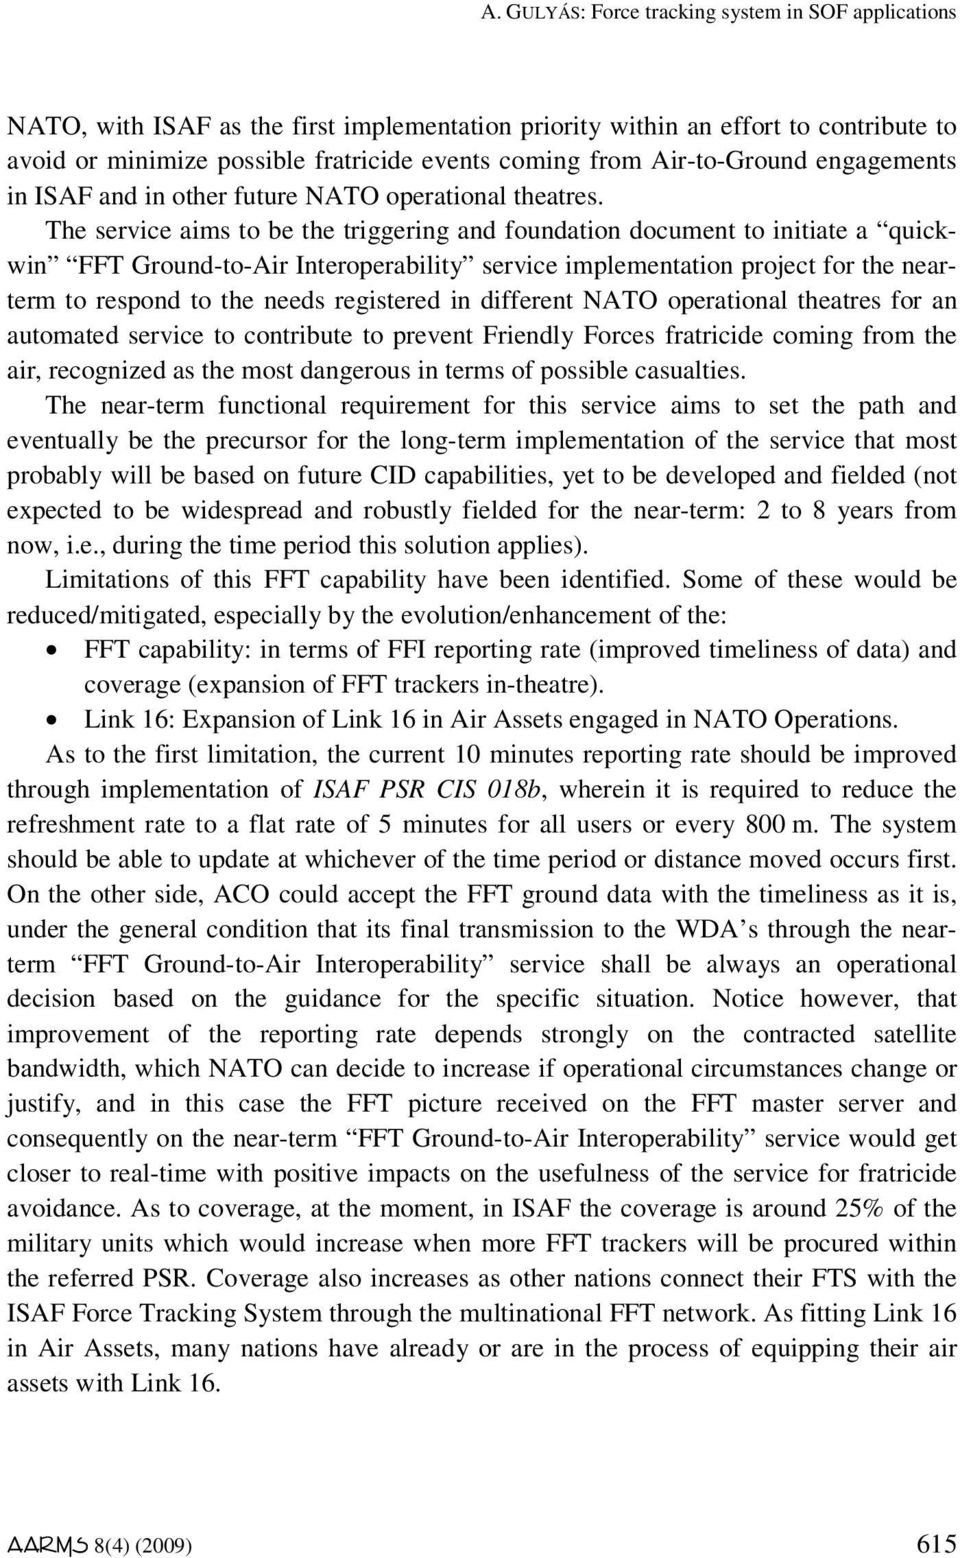 The service aims to be the triggering and foundation document to initiate a quickwin FFT Ground-to-Air Interoperability service implementation project for the nearterm to respond to the needs